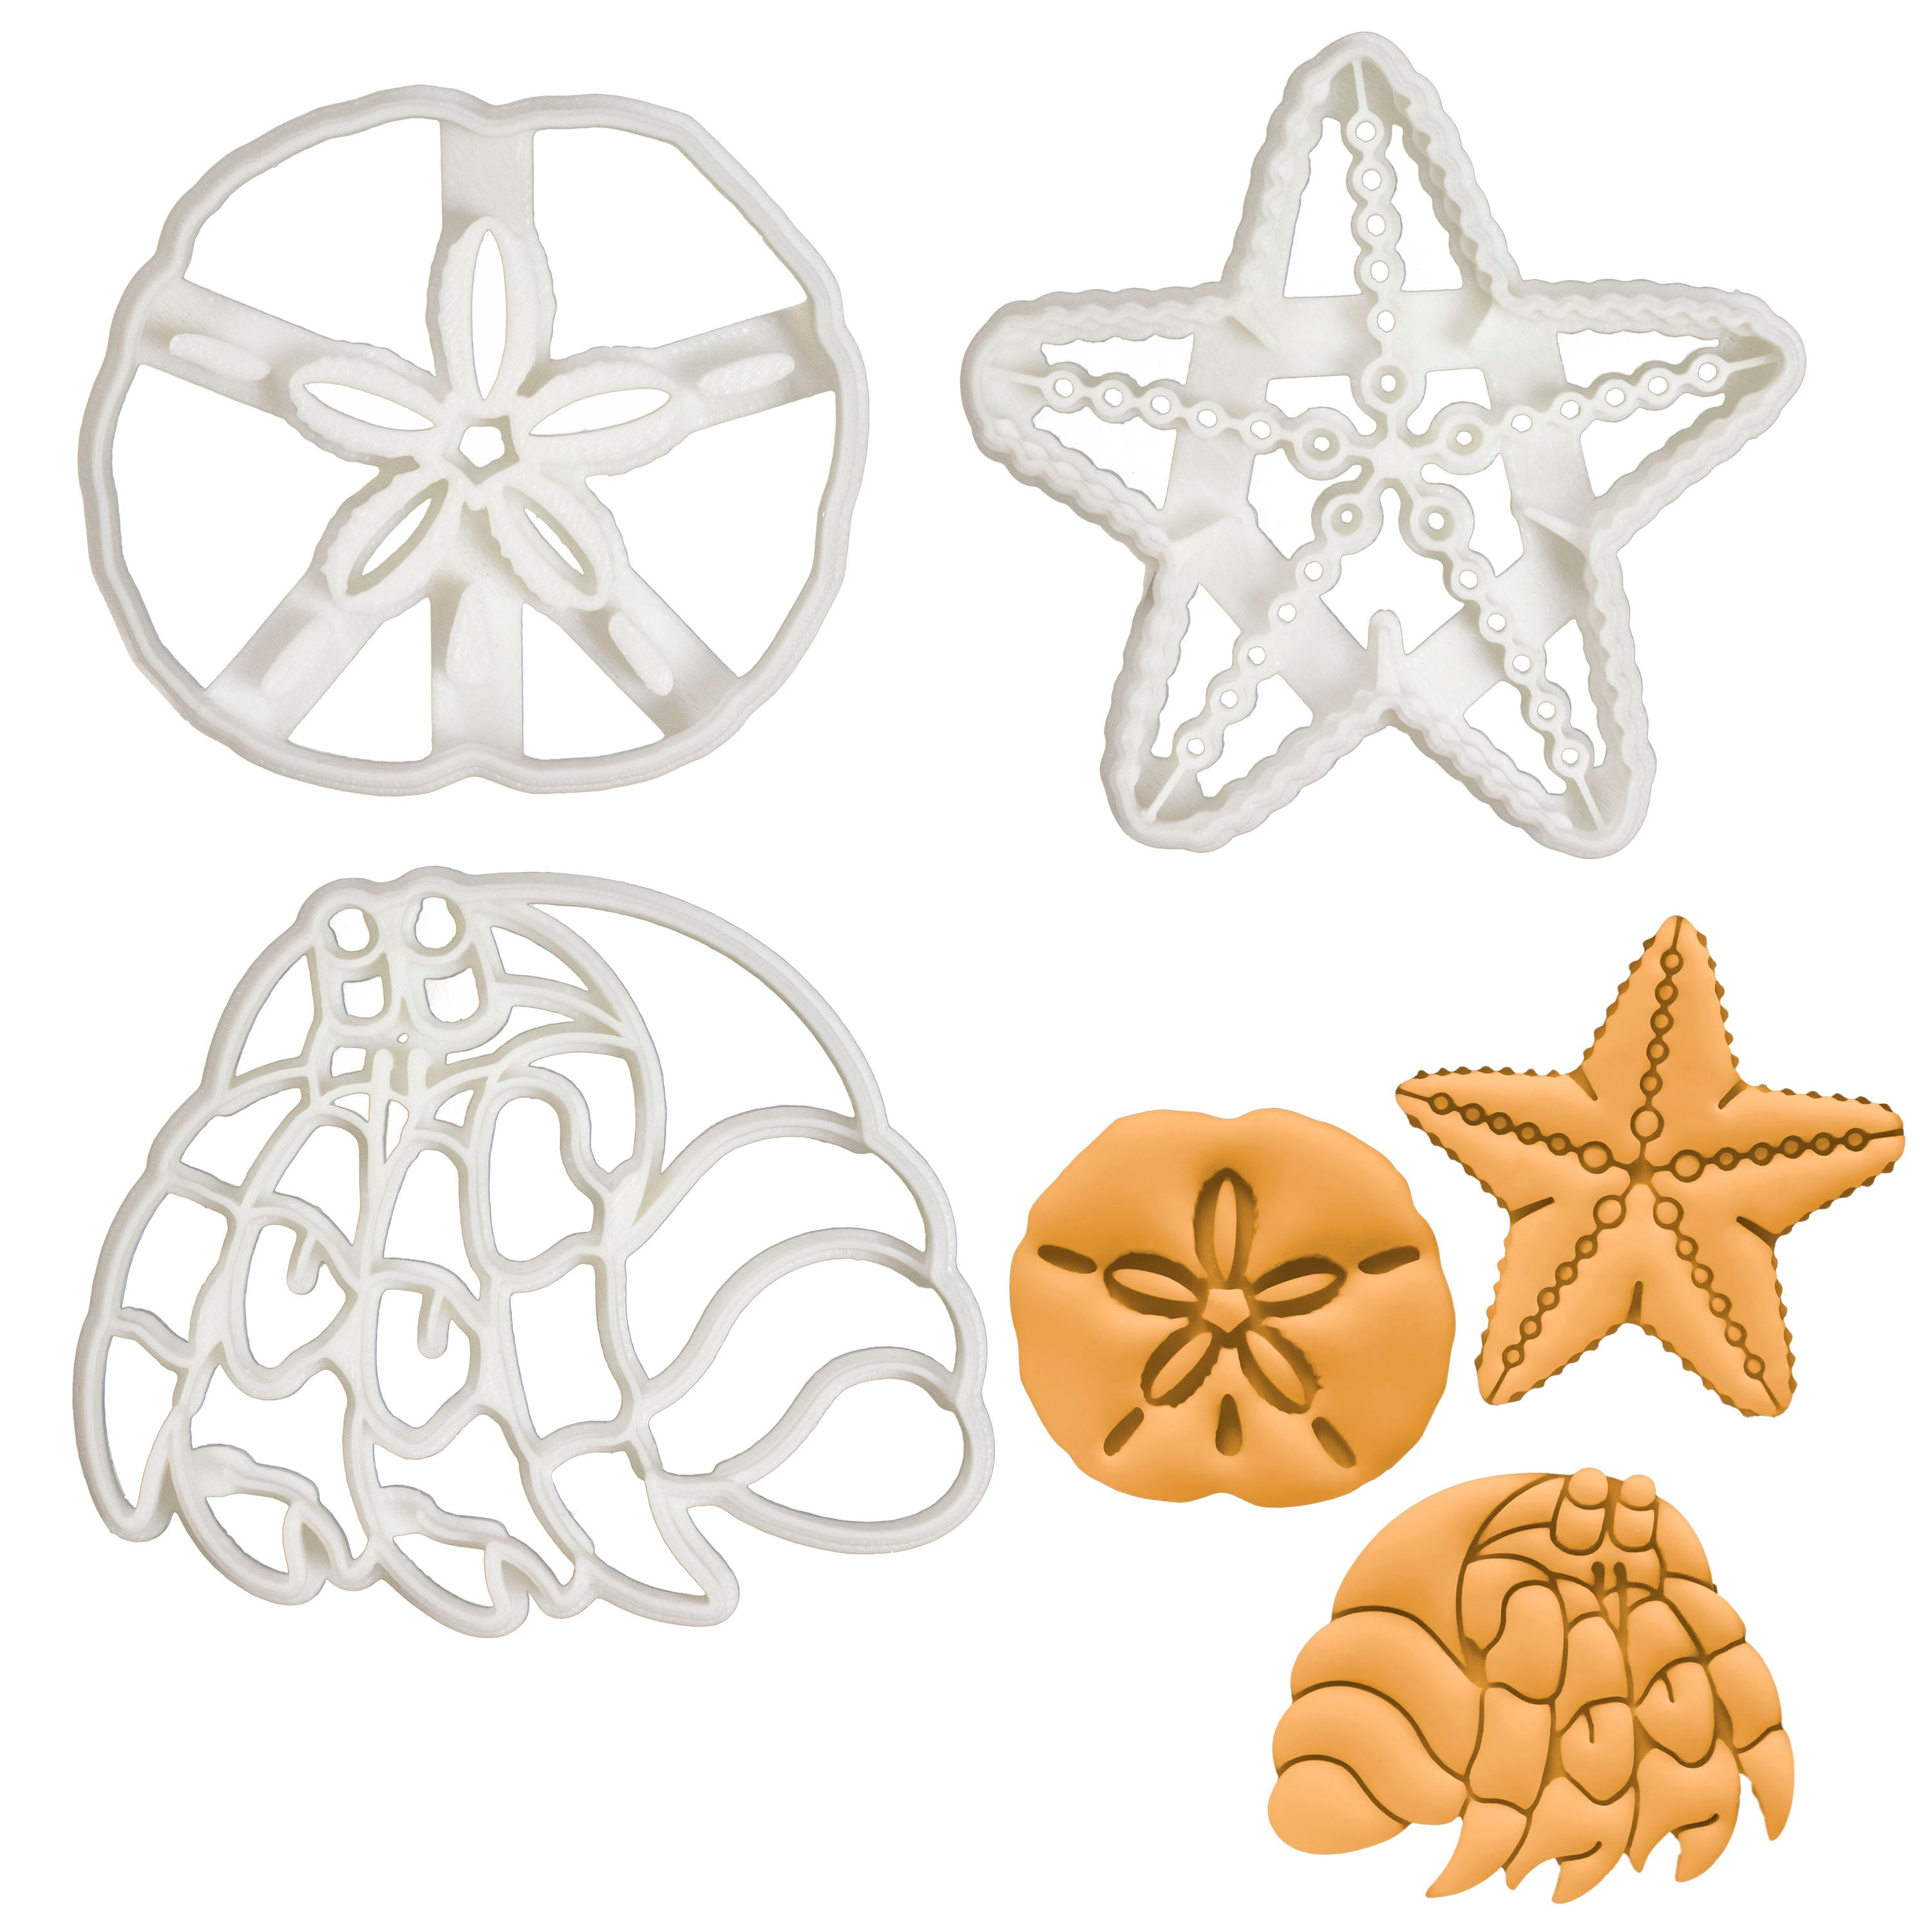 Set of 3 Nautical themed Cookie Cutters: Starfish, sand dollar, and hermit crab